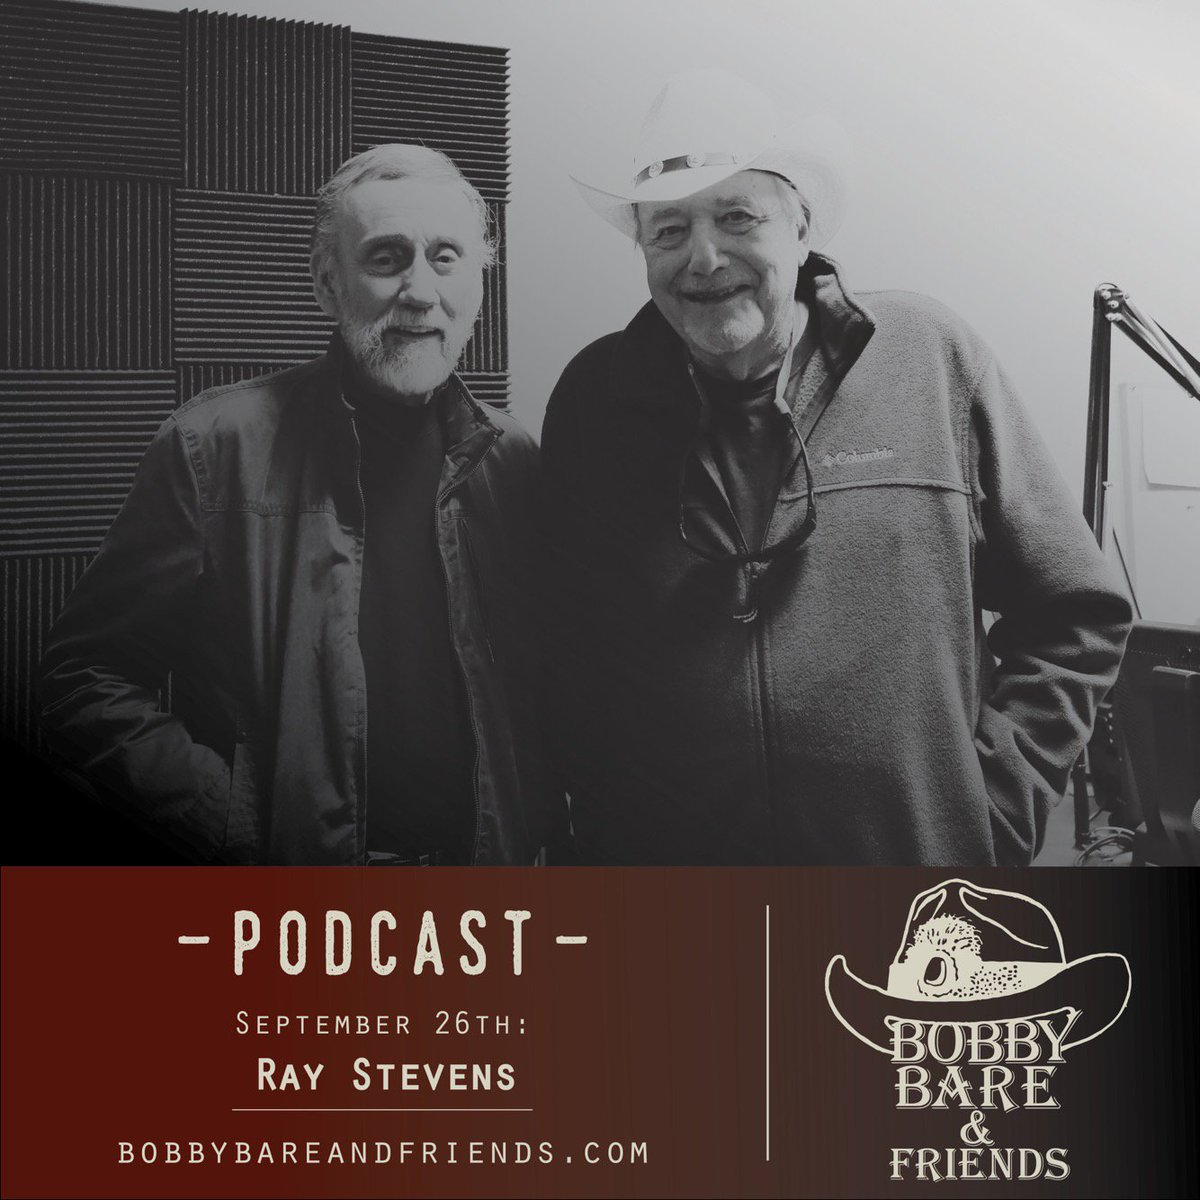 featuring ray as the special guest it is up and available for free at httpwwwbobbybareandfriendscom give it a listenpictwittercomawxfxjxgls - Ray Stevens Christmas Songs